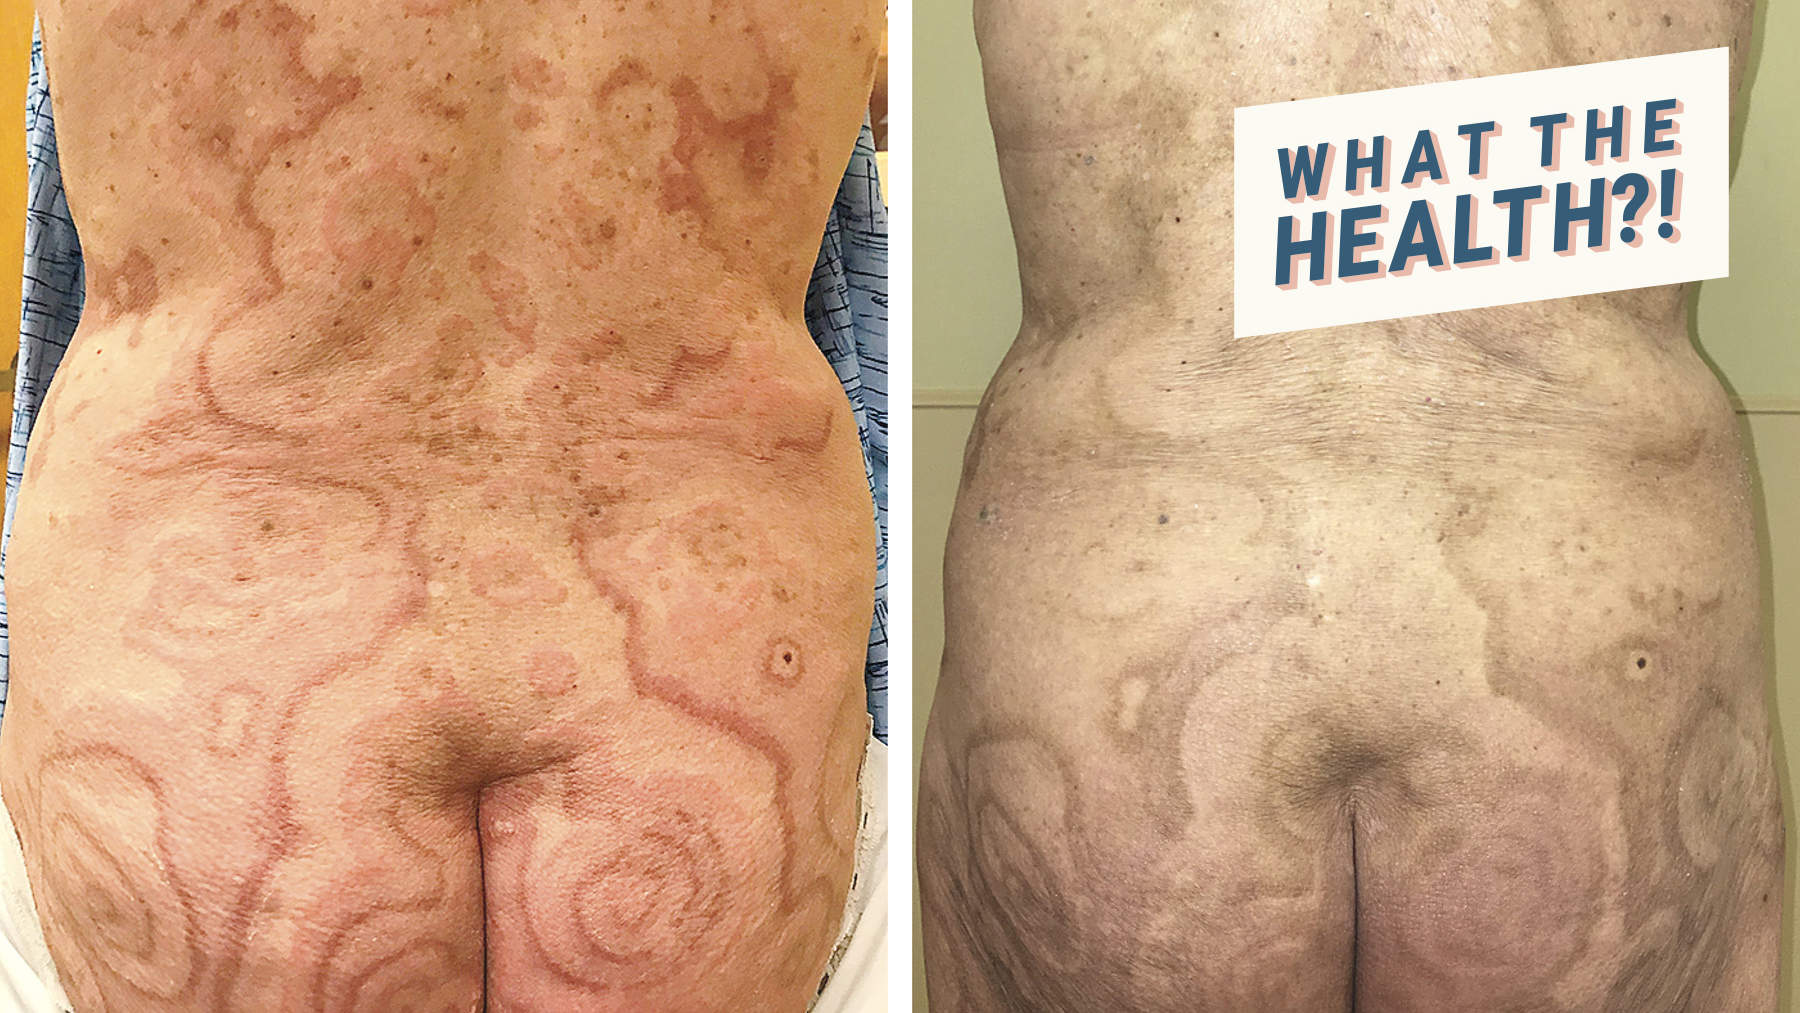 This Woman's Red, Ring-Shaped Rash Turned Out to Be a Sign of Anal Cancer